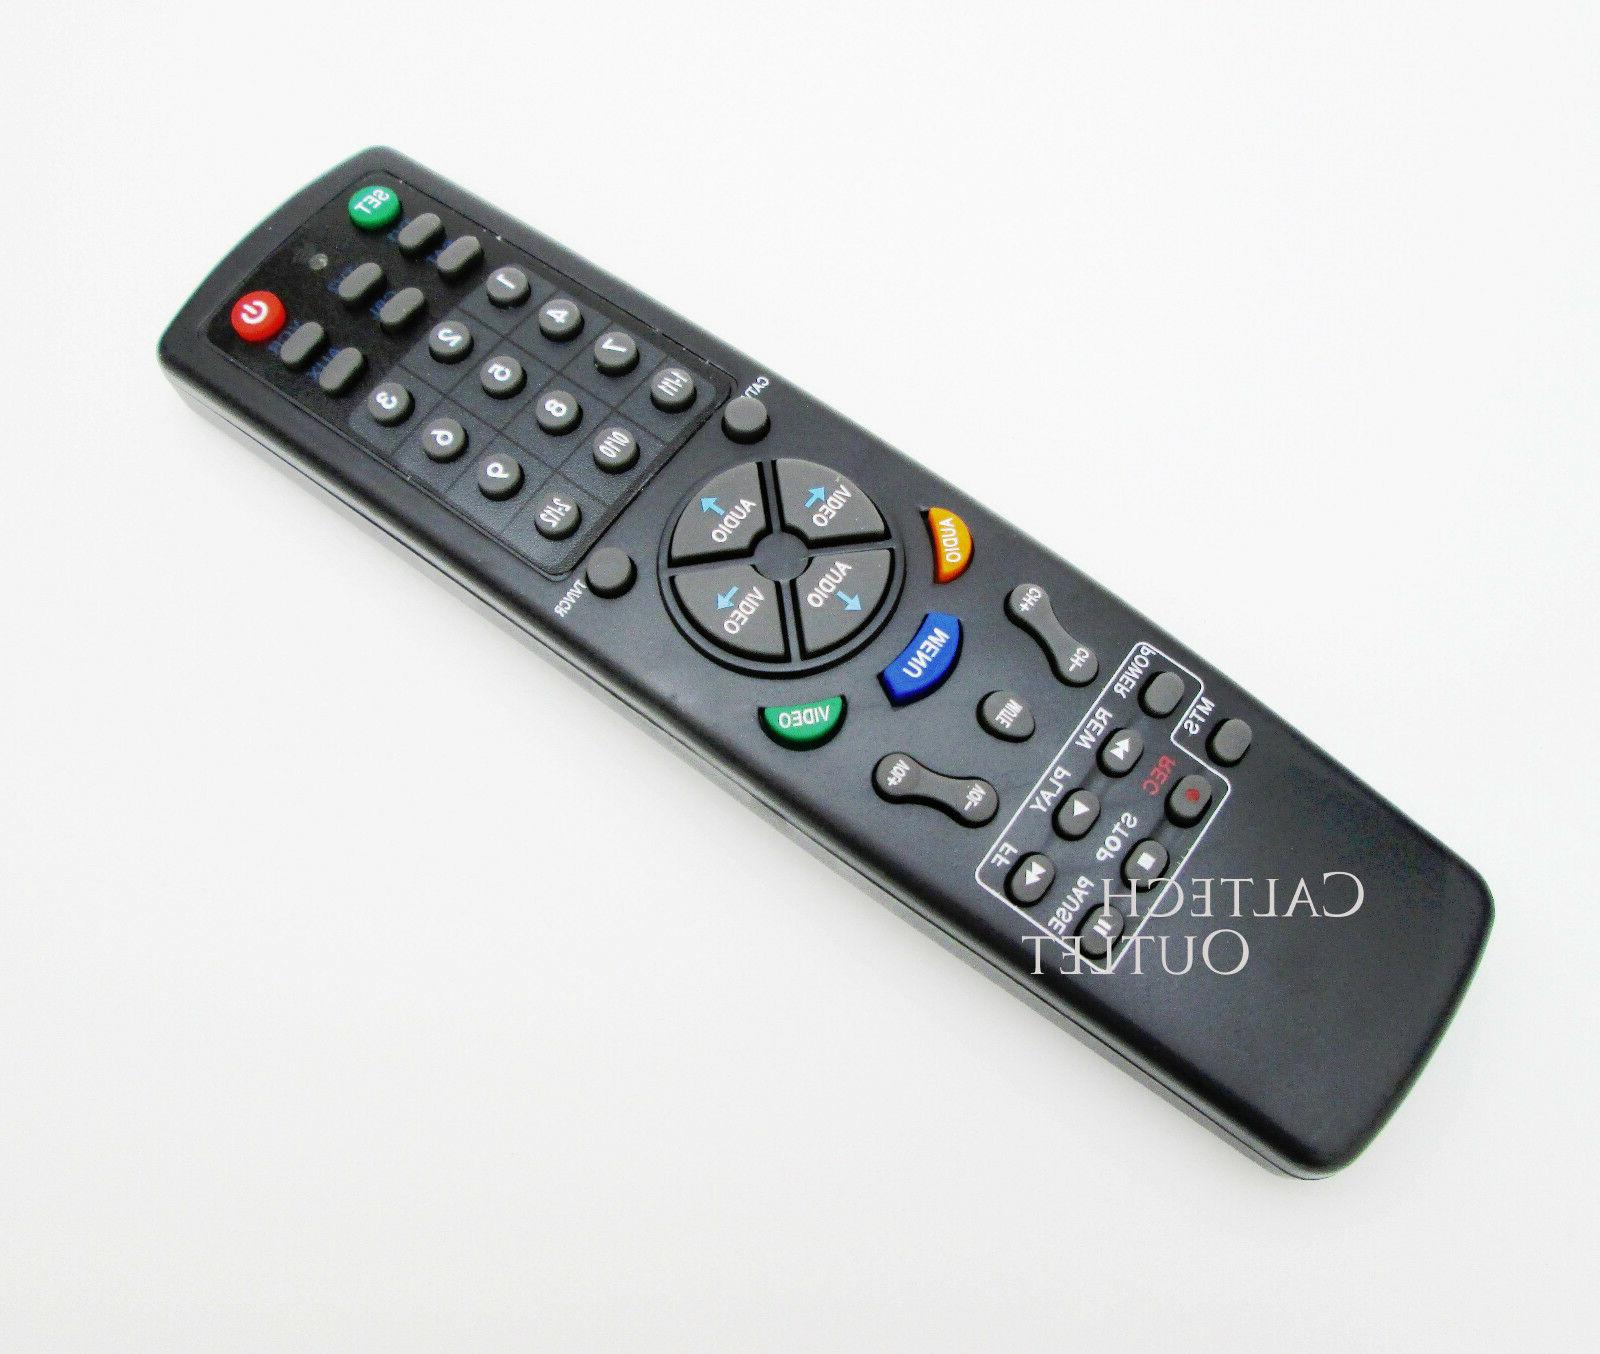 IN TV DVD VCR Receiver